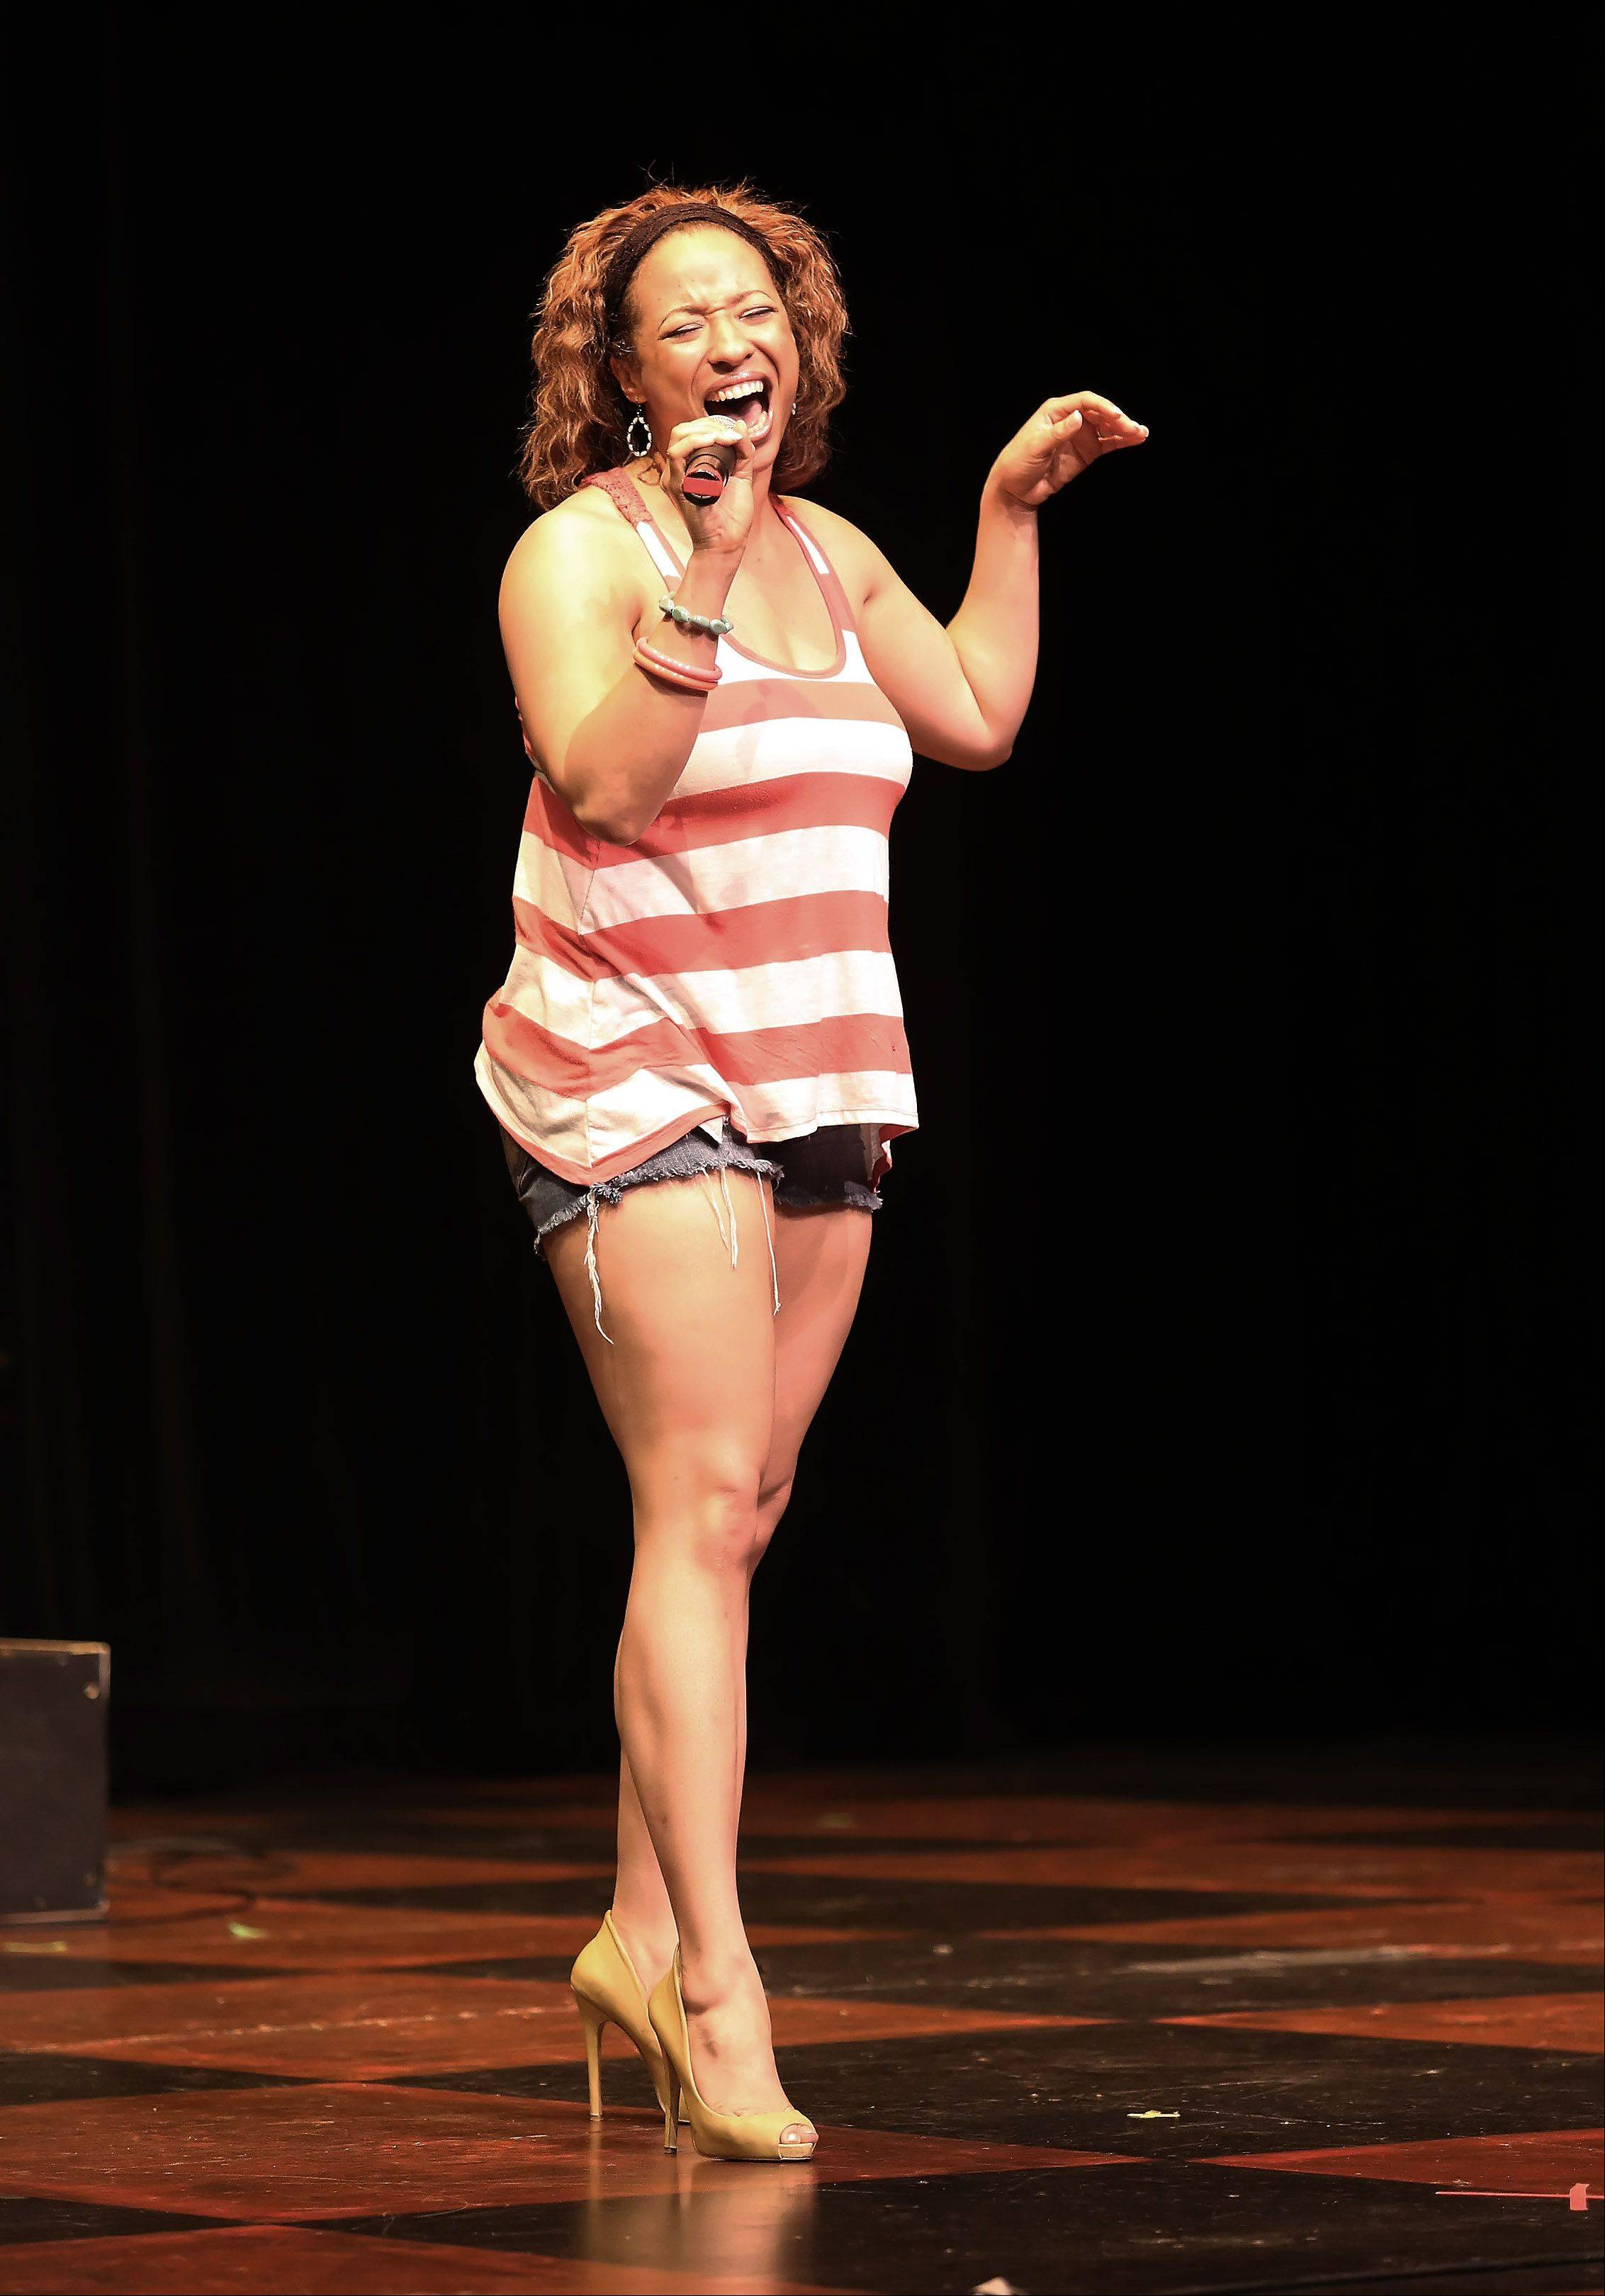 Tiffany Turner sings during the first round of finalists for the Suburban Chicago's Got Talent competition Sunday night at the Metropolis Performing Arts Centre in Arlington Heights. The summer-long talent contest is presented by the Daily Herald and sponsored by the Arlington Heights Chamber of Commerce.